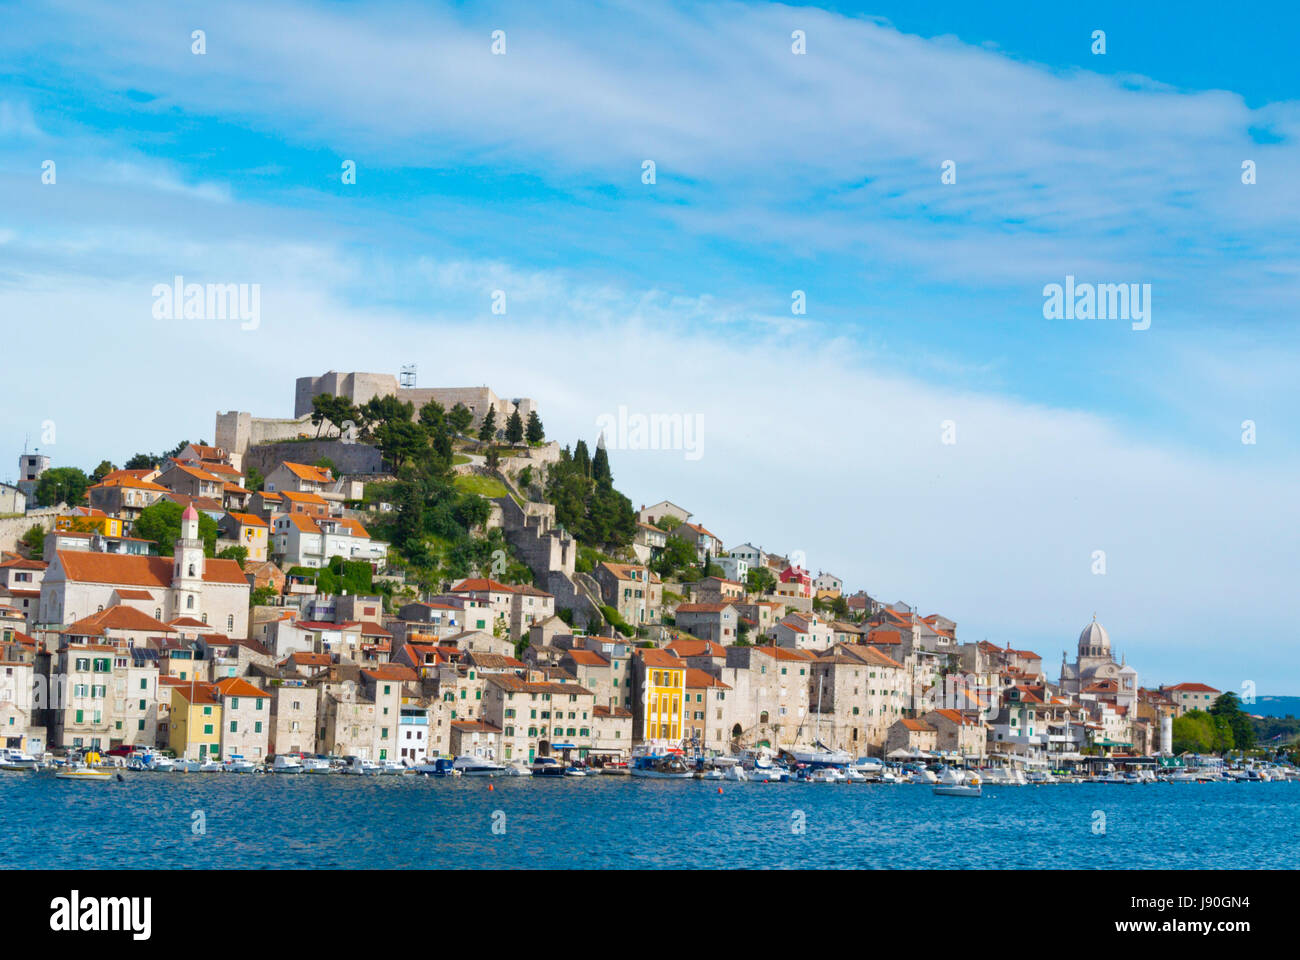 St Michaels fortress on top of hill, Dolac neighbourhood, Sibenik, Dalmatia, Croatia - Stock Image